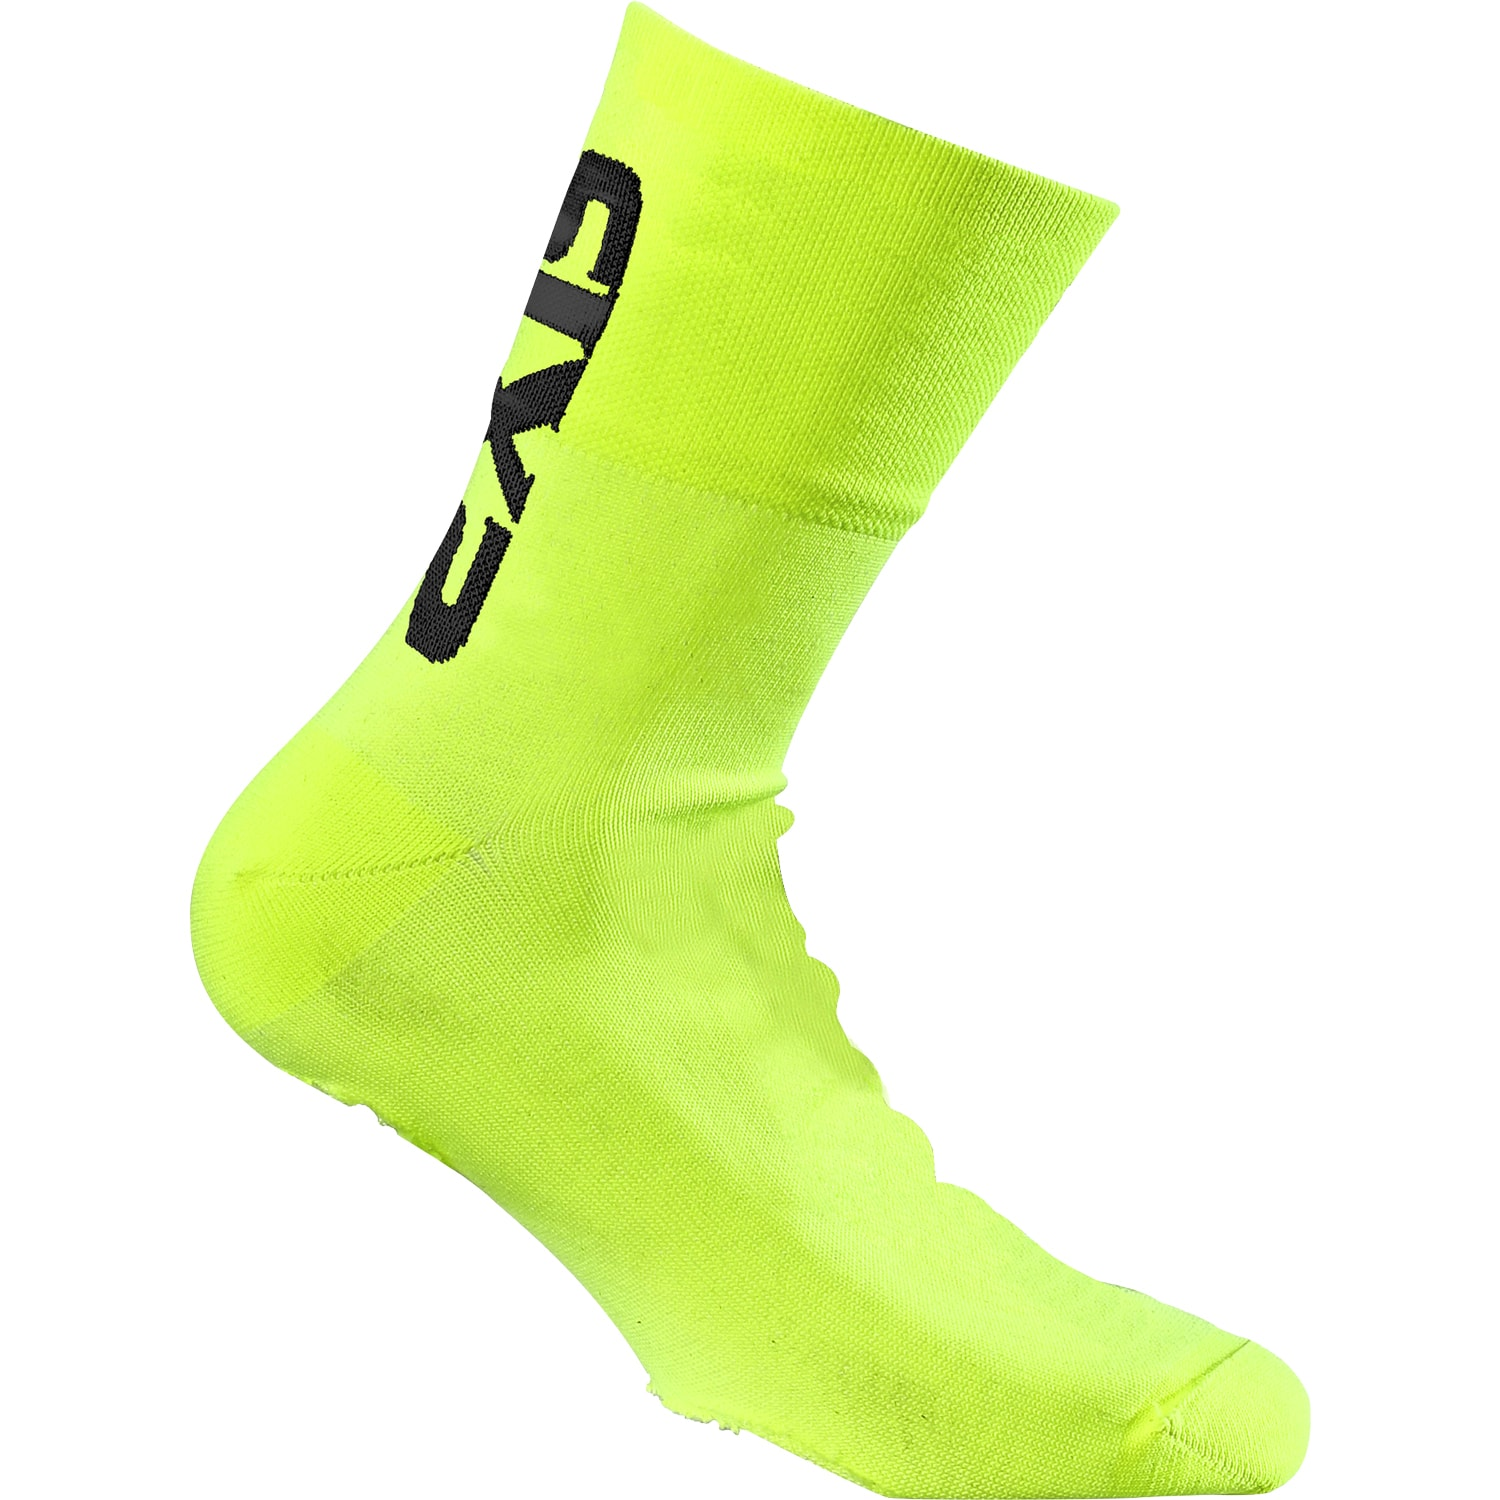 義大利 SIXS <br>機能碳鞋套 <br>黑/黃 <br>SMART BOOTIE YELLOW BLACK